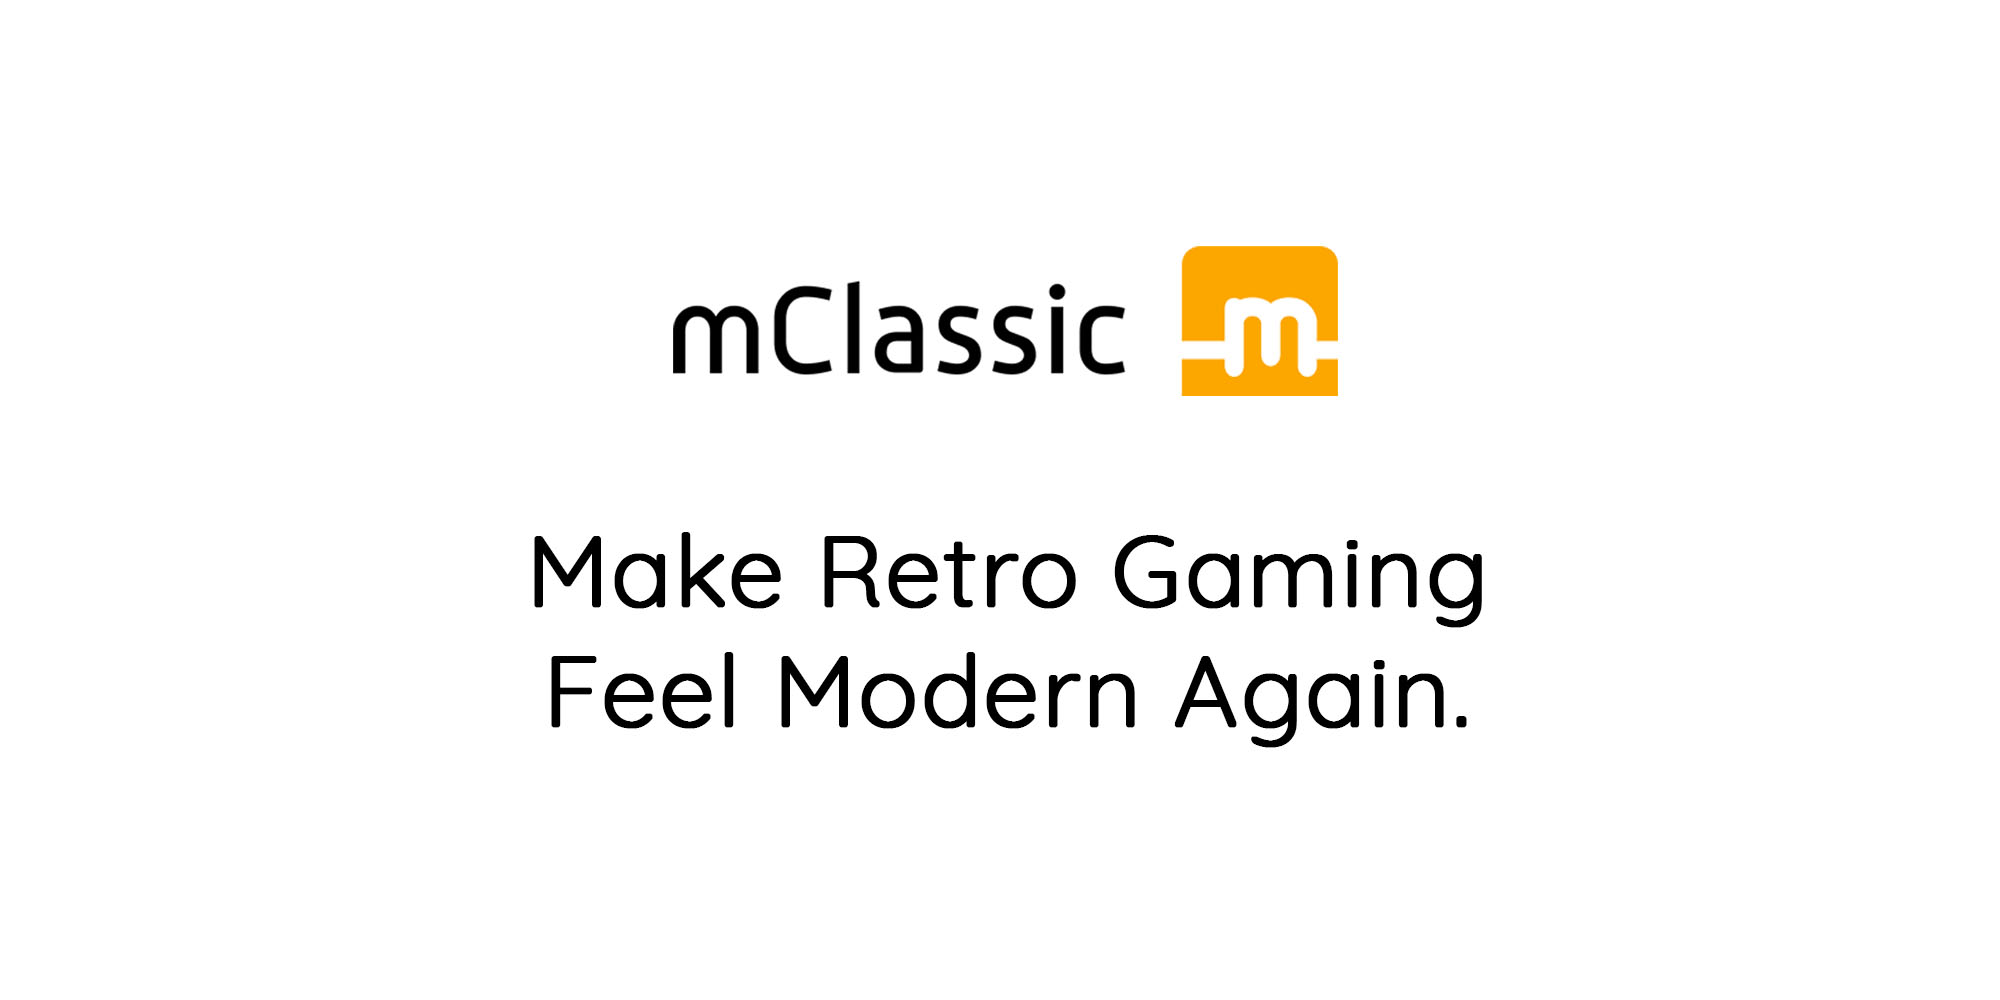 Make retro gaming feel modern again.